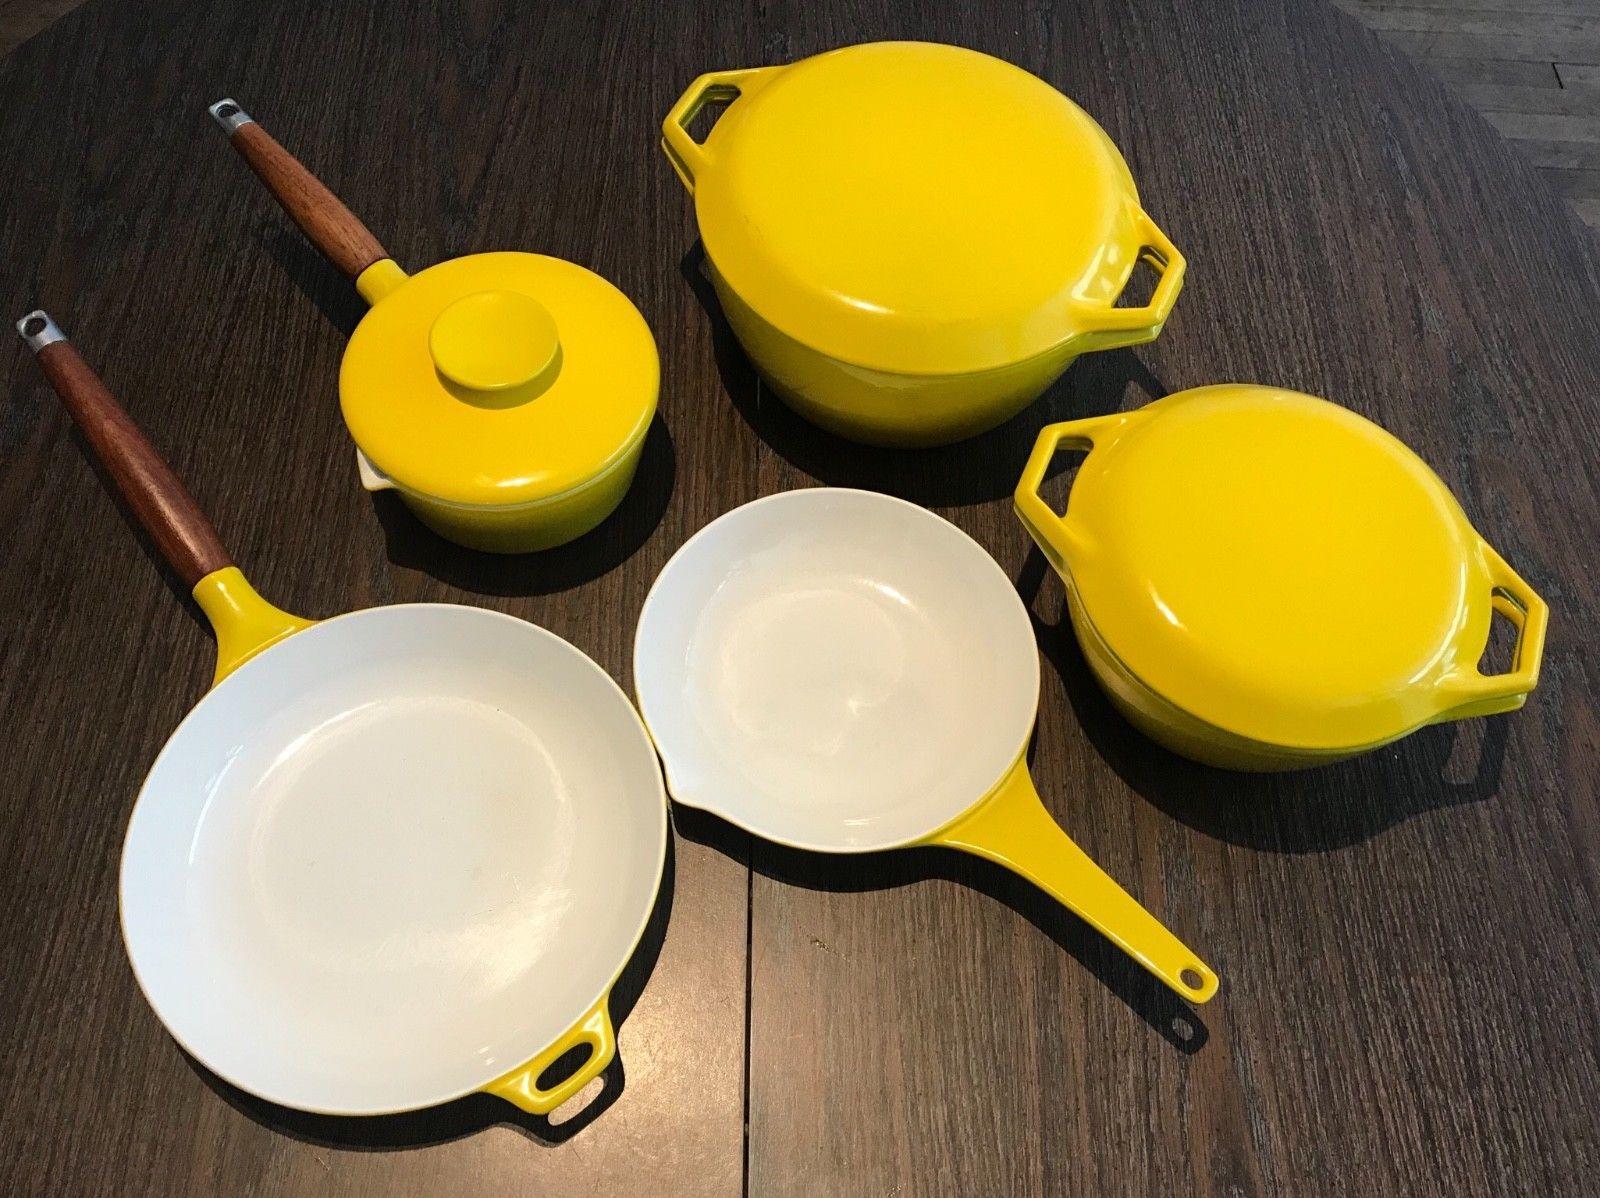 Great Swank 5 Piece Set Of Copco Denmark Cookware Manufacturer Copco Denmark There Is Life Wear Sauce Pot With L Vintage Cookware Yellow Enamel Cookware